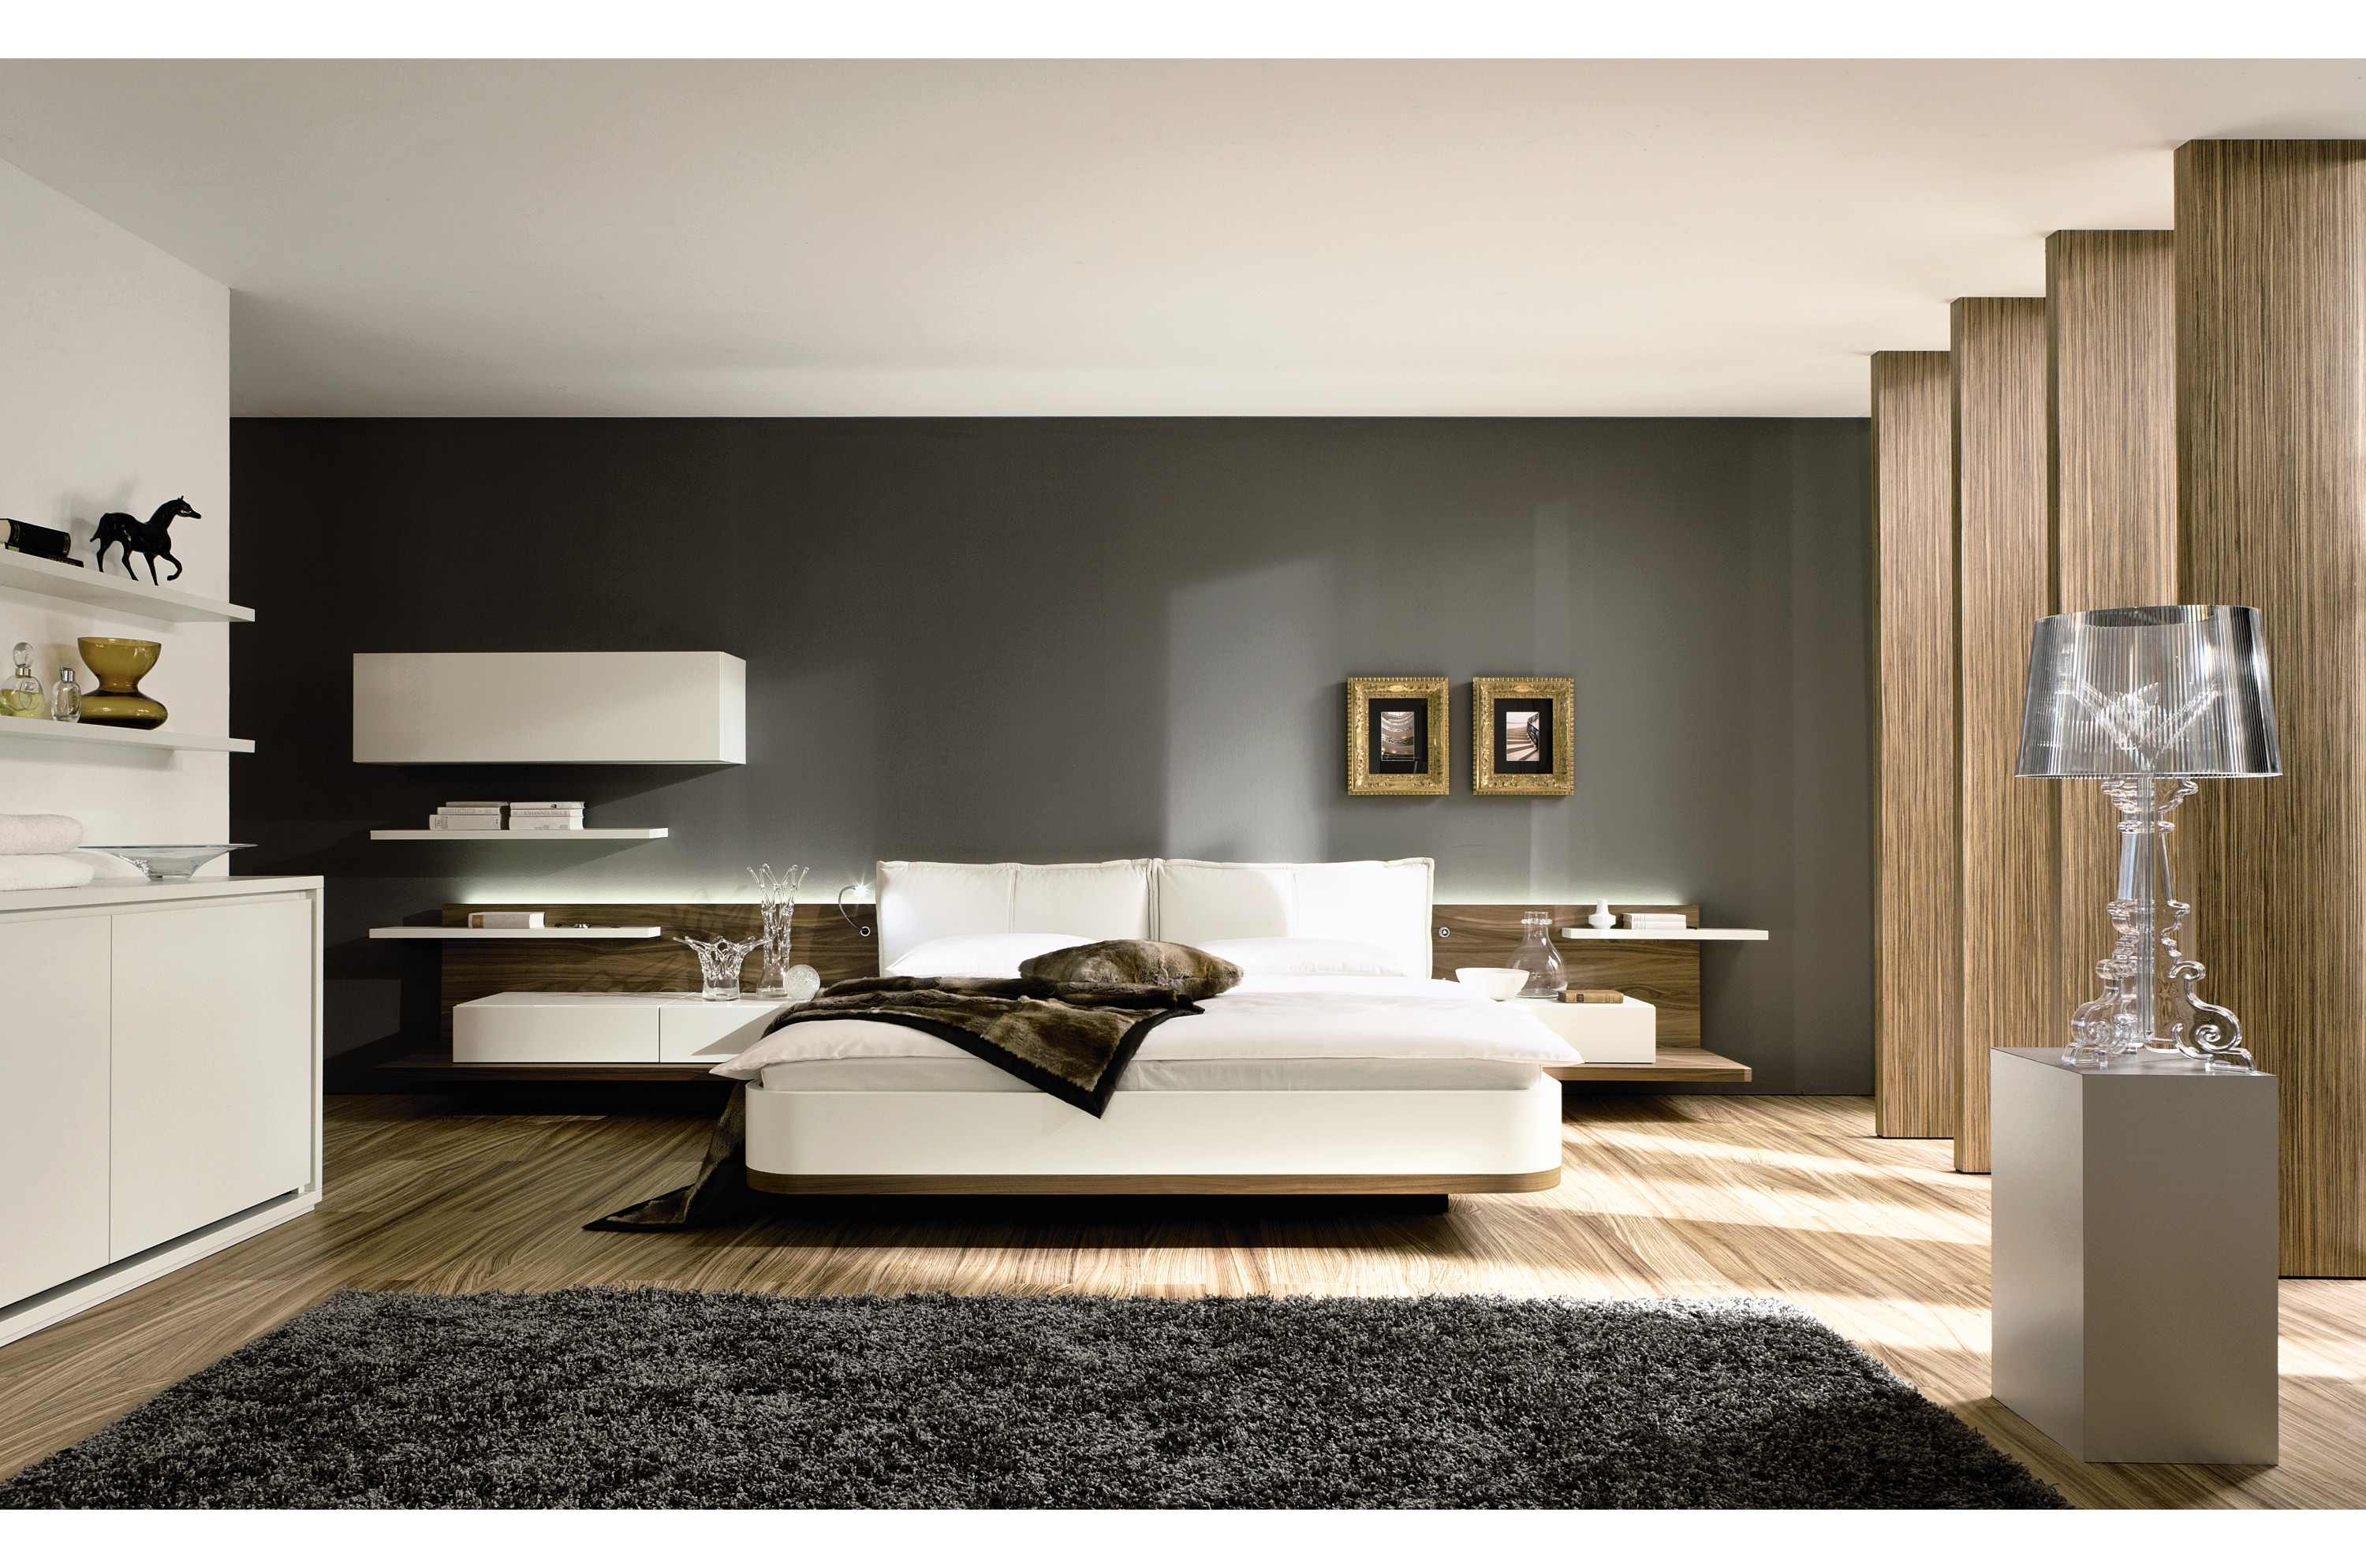 Modern bedroom innovation bedroom ideas interior design for Interior bed design images